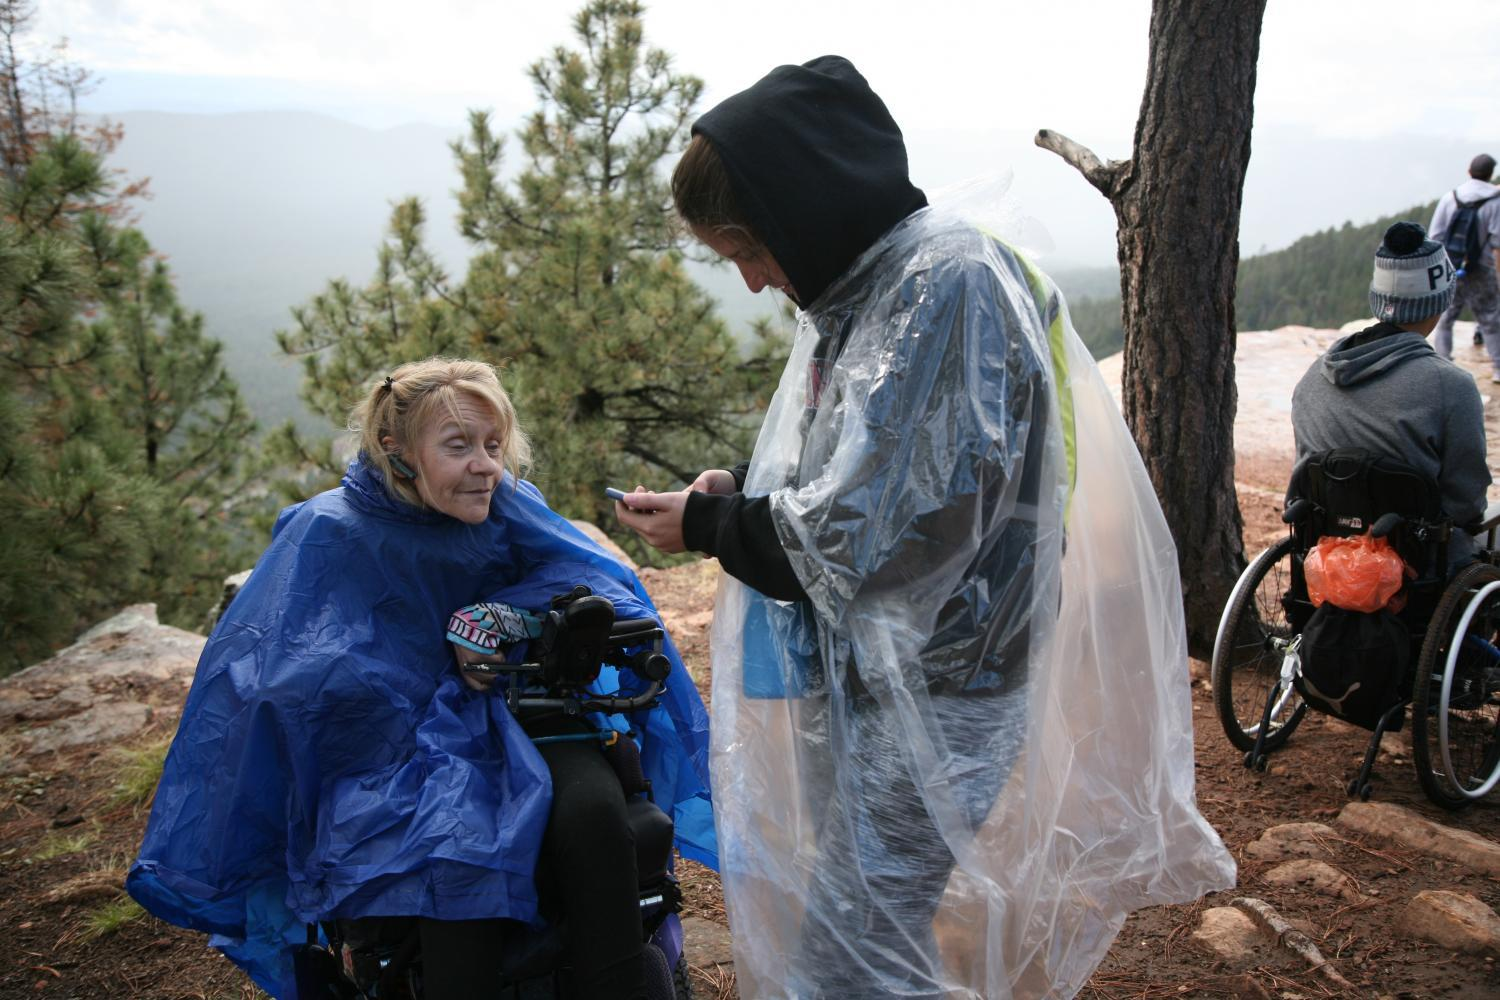 A woman who uses a power chair is outside on the edge of a cliff with another person. They both are using ponchos to protect from rain. There are pine trees and mountains in the background.